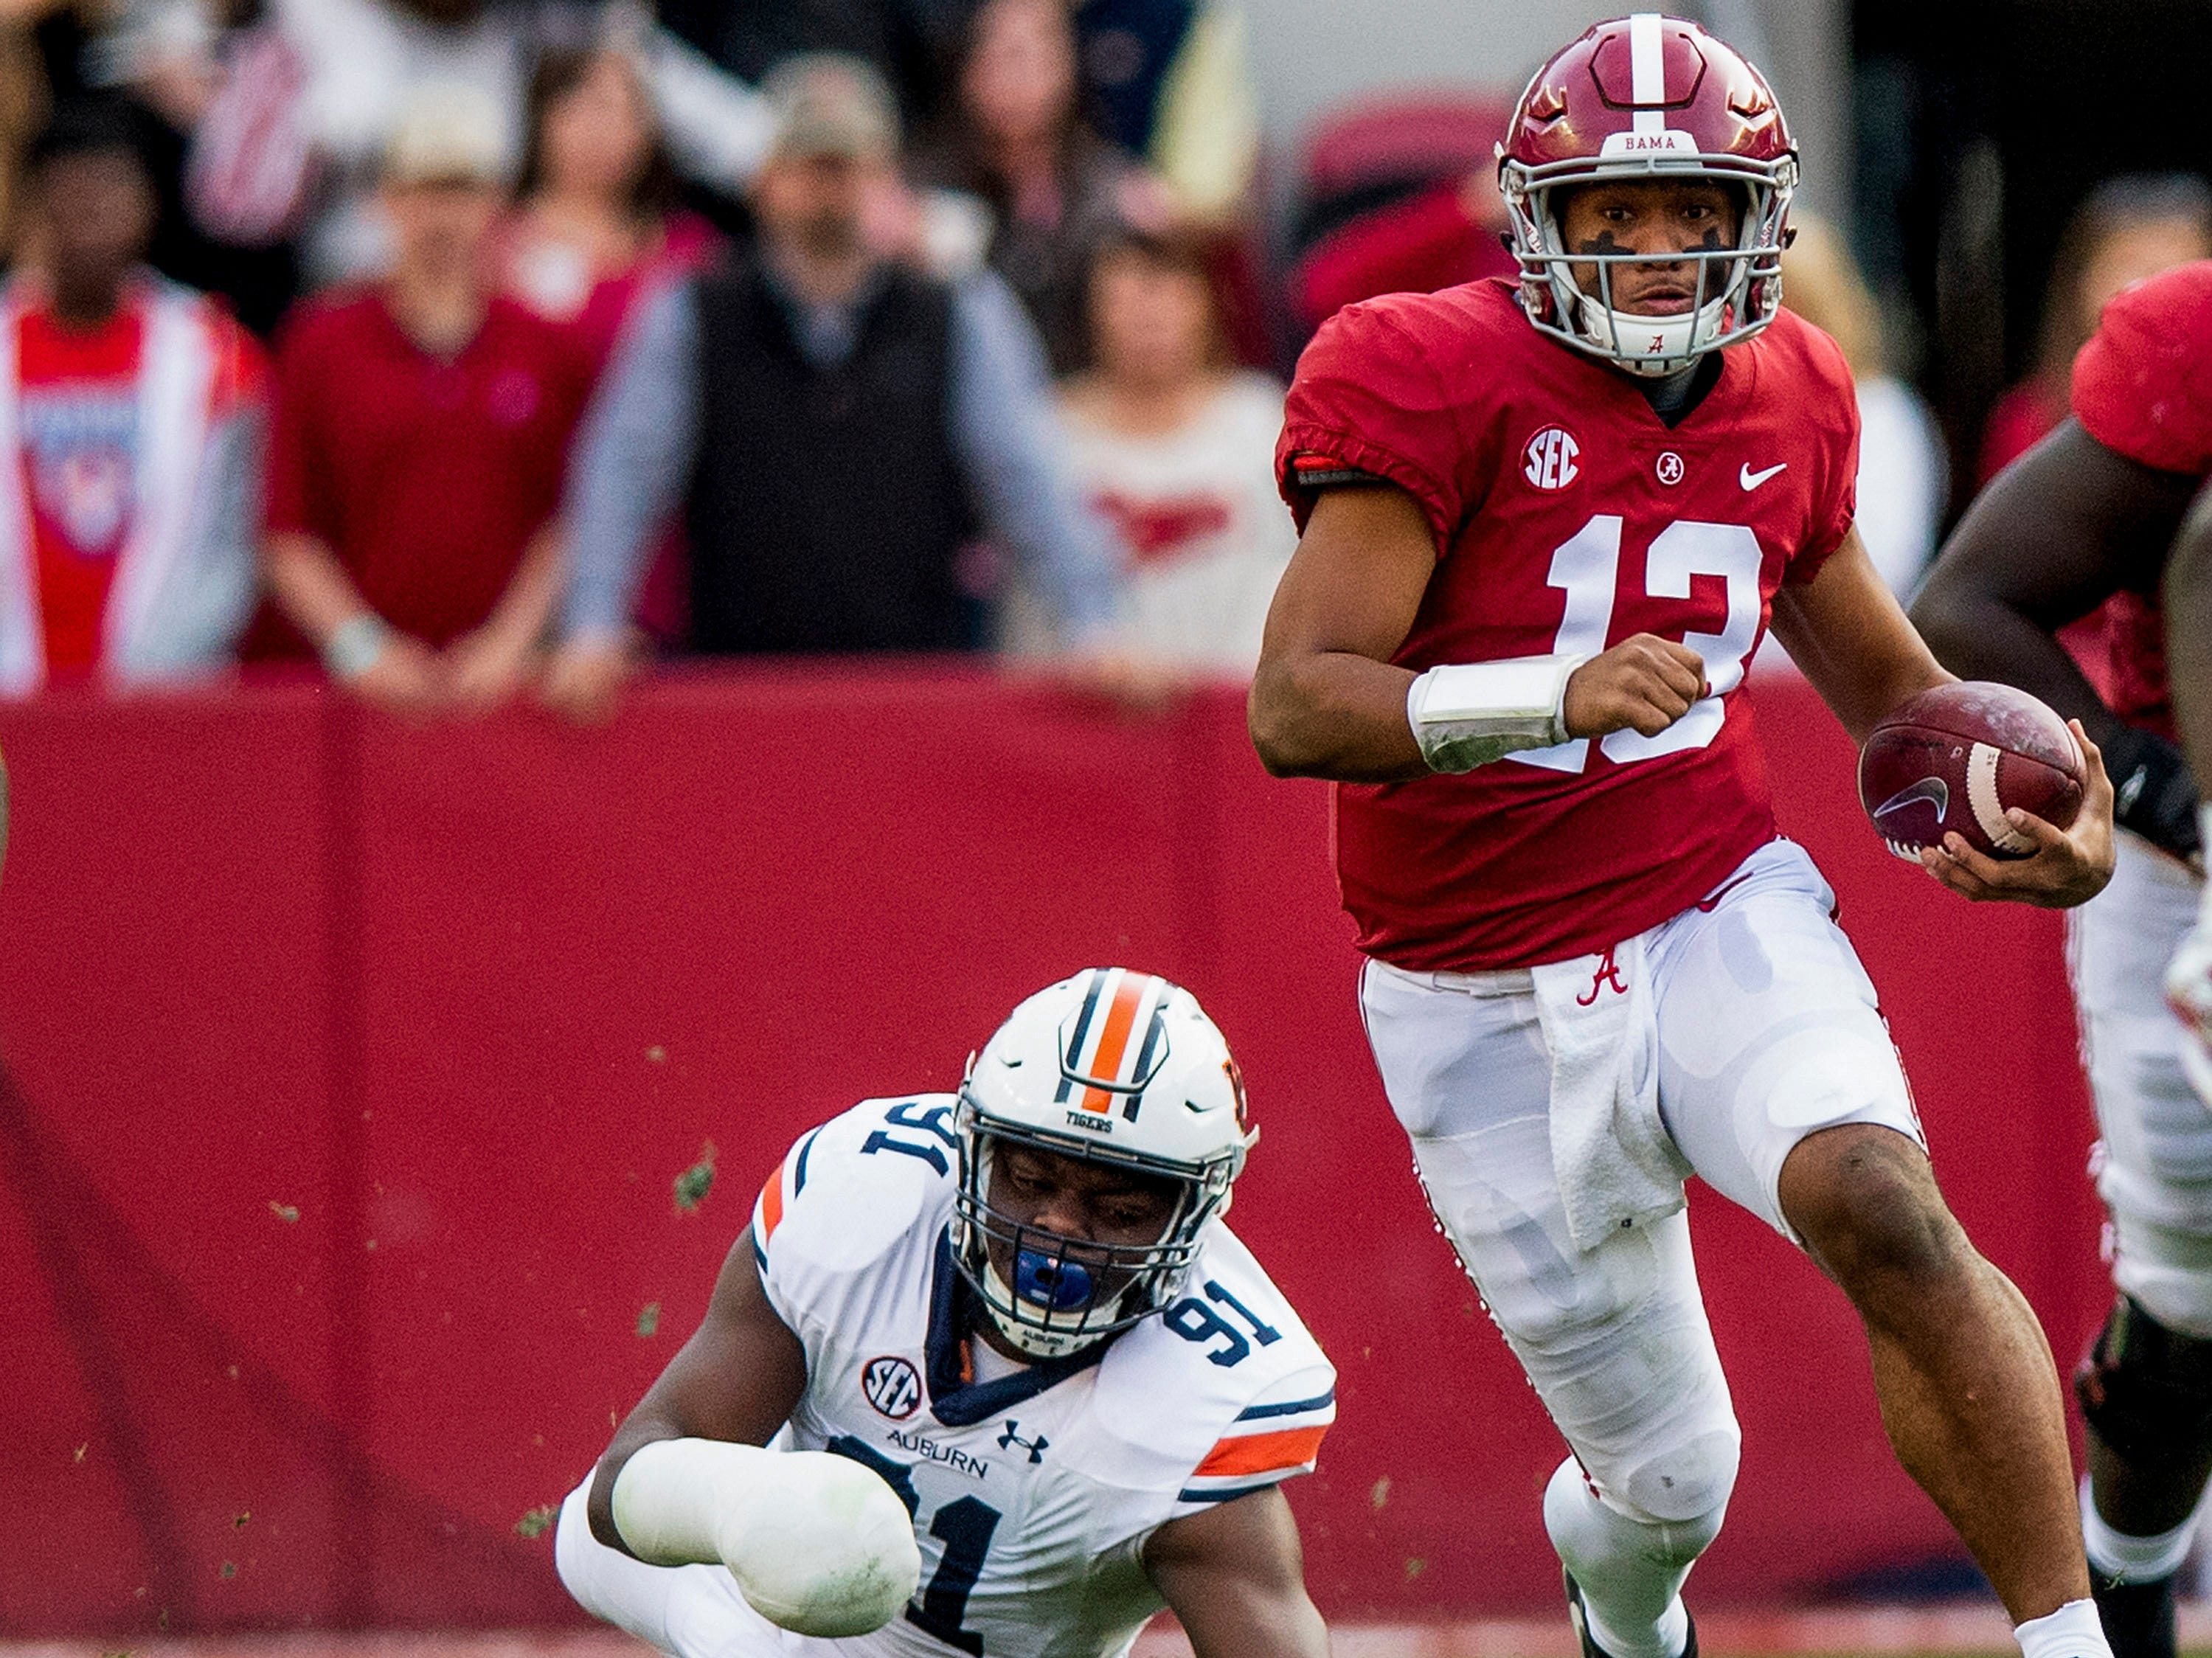 Alabama quarterback Tua Tagovailoa (13) carries the ball against Auburn in first half action during the Iron Bowl at Bryant-Denny Stadium in Tuscaloosa, Ala., on Saturday November 24, 2018.